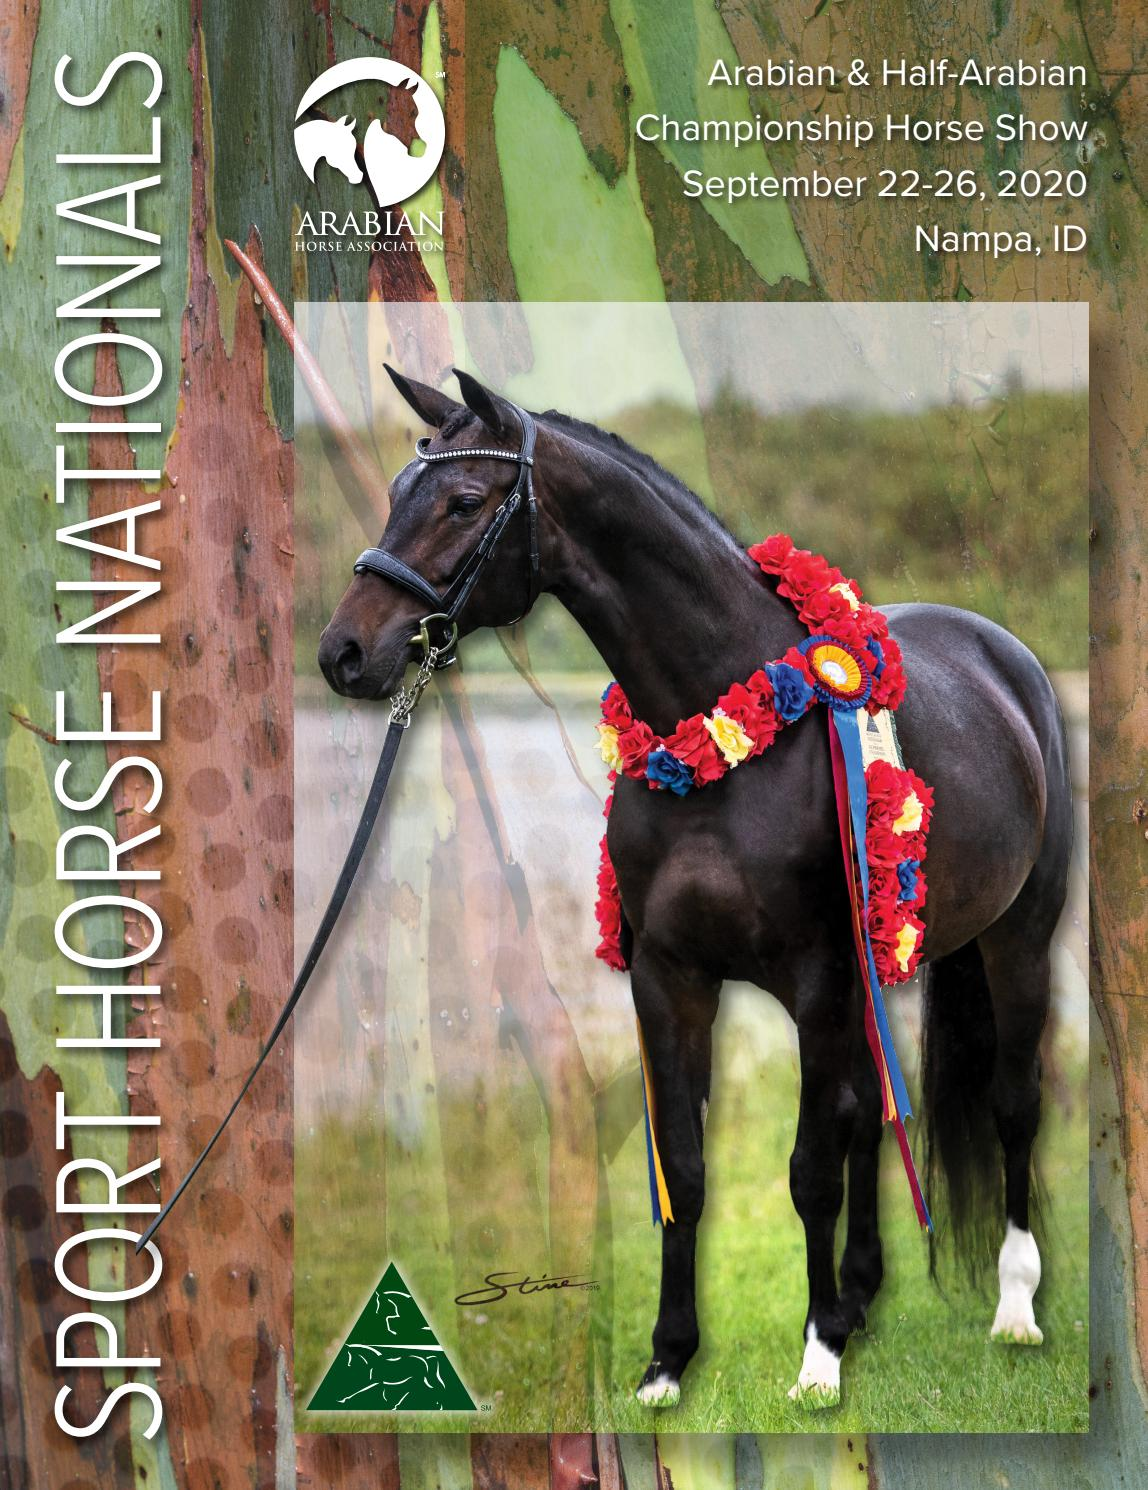 2020 Sport Horse National Arabian Half Arabian Championship Horse Show Program By Arabian Horse Association Issuu